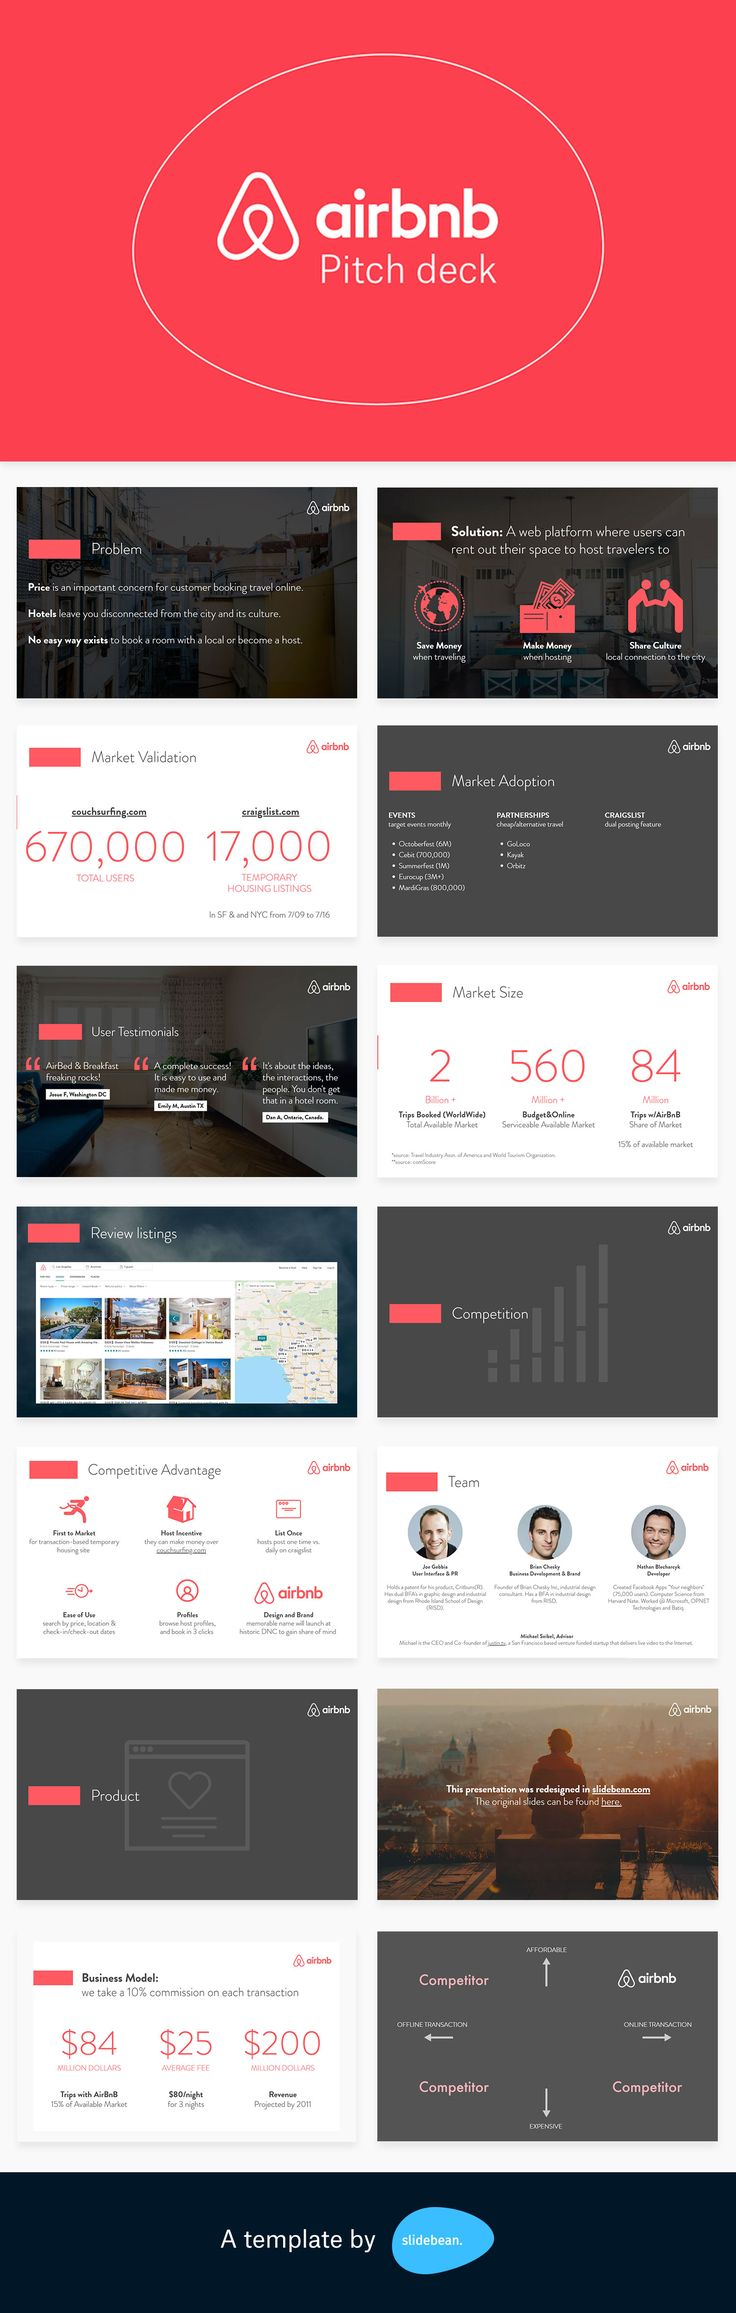 Airbnb Pitch Deck Template Presentation design template